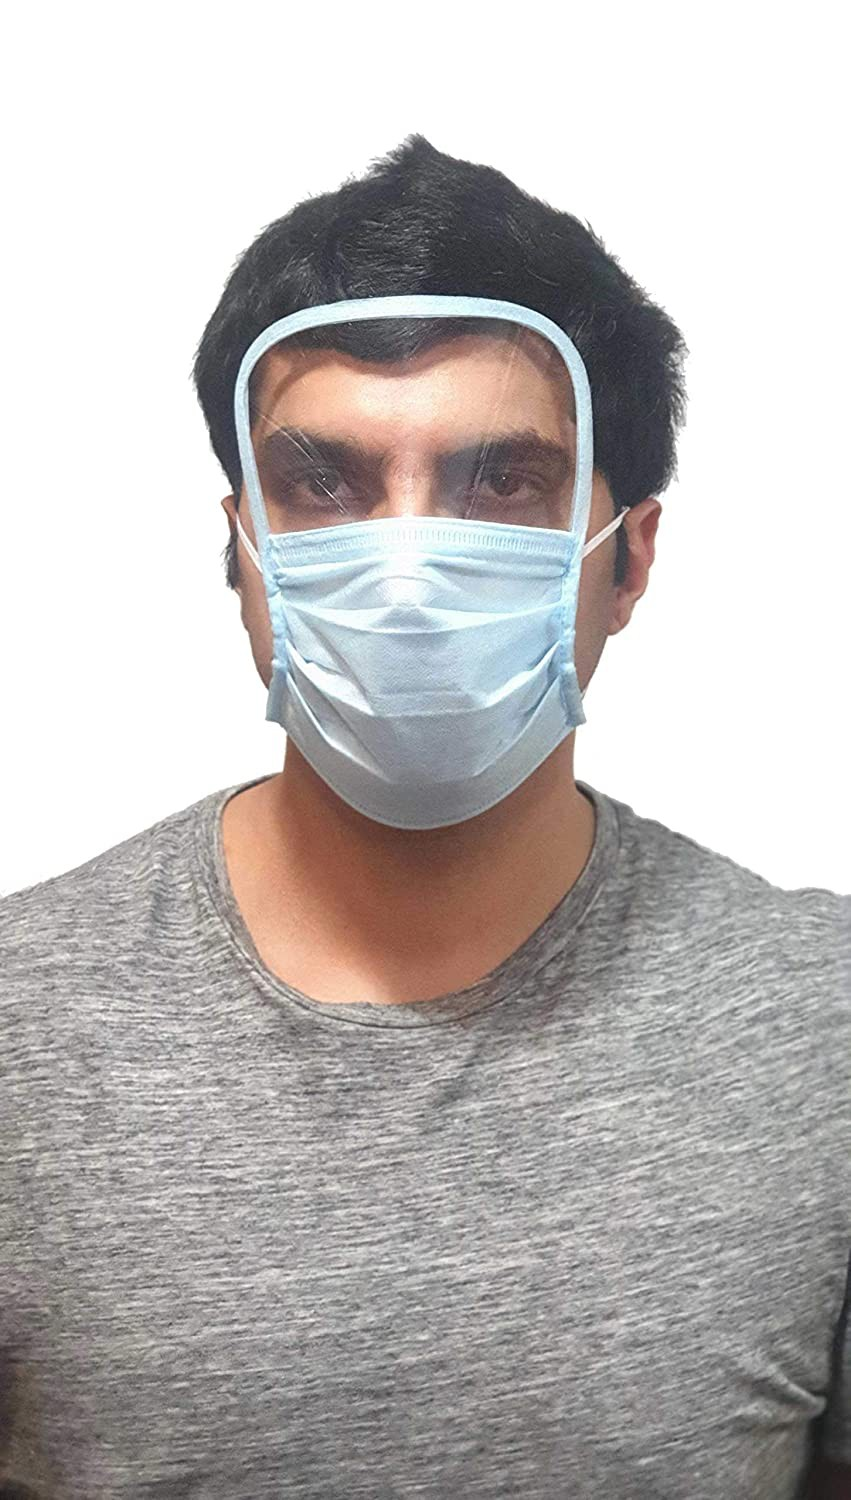 woschmann-3ply-disposable-face-mask-with-face-shield-attachedpack-of-10